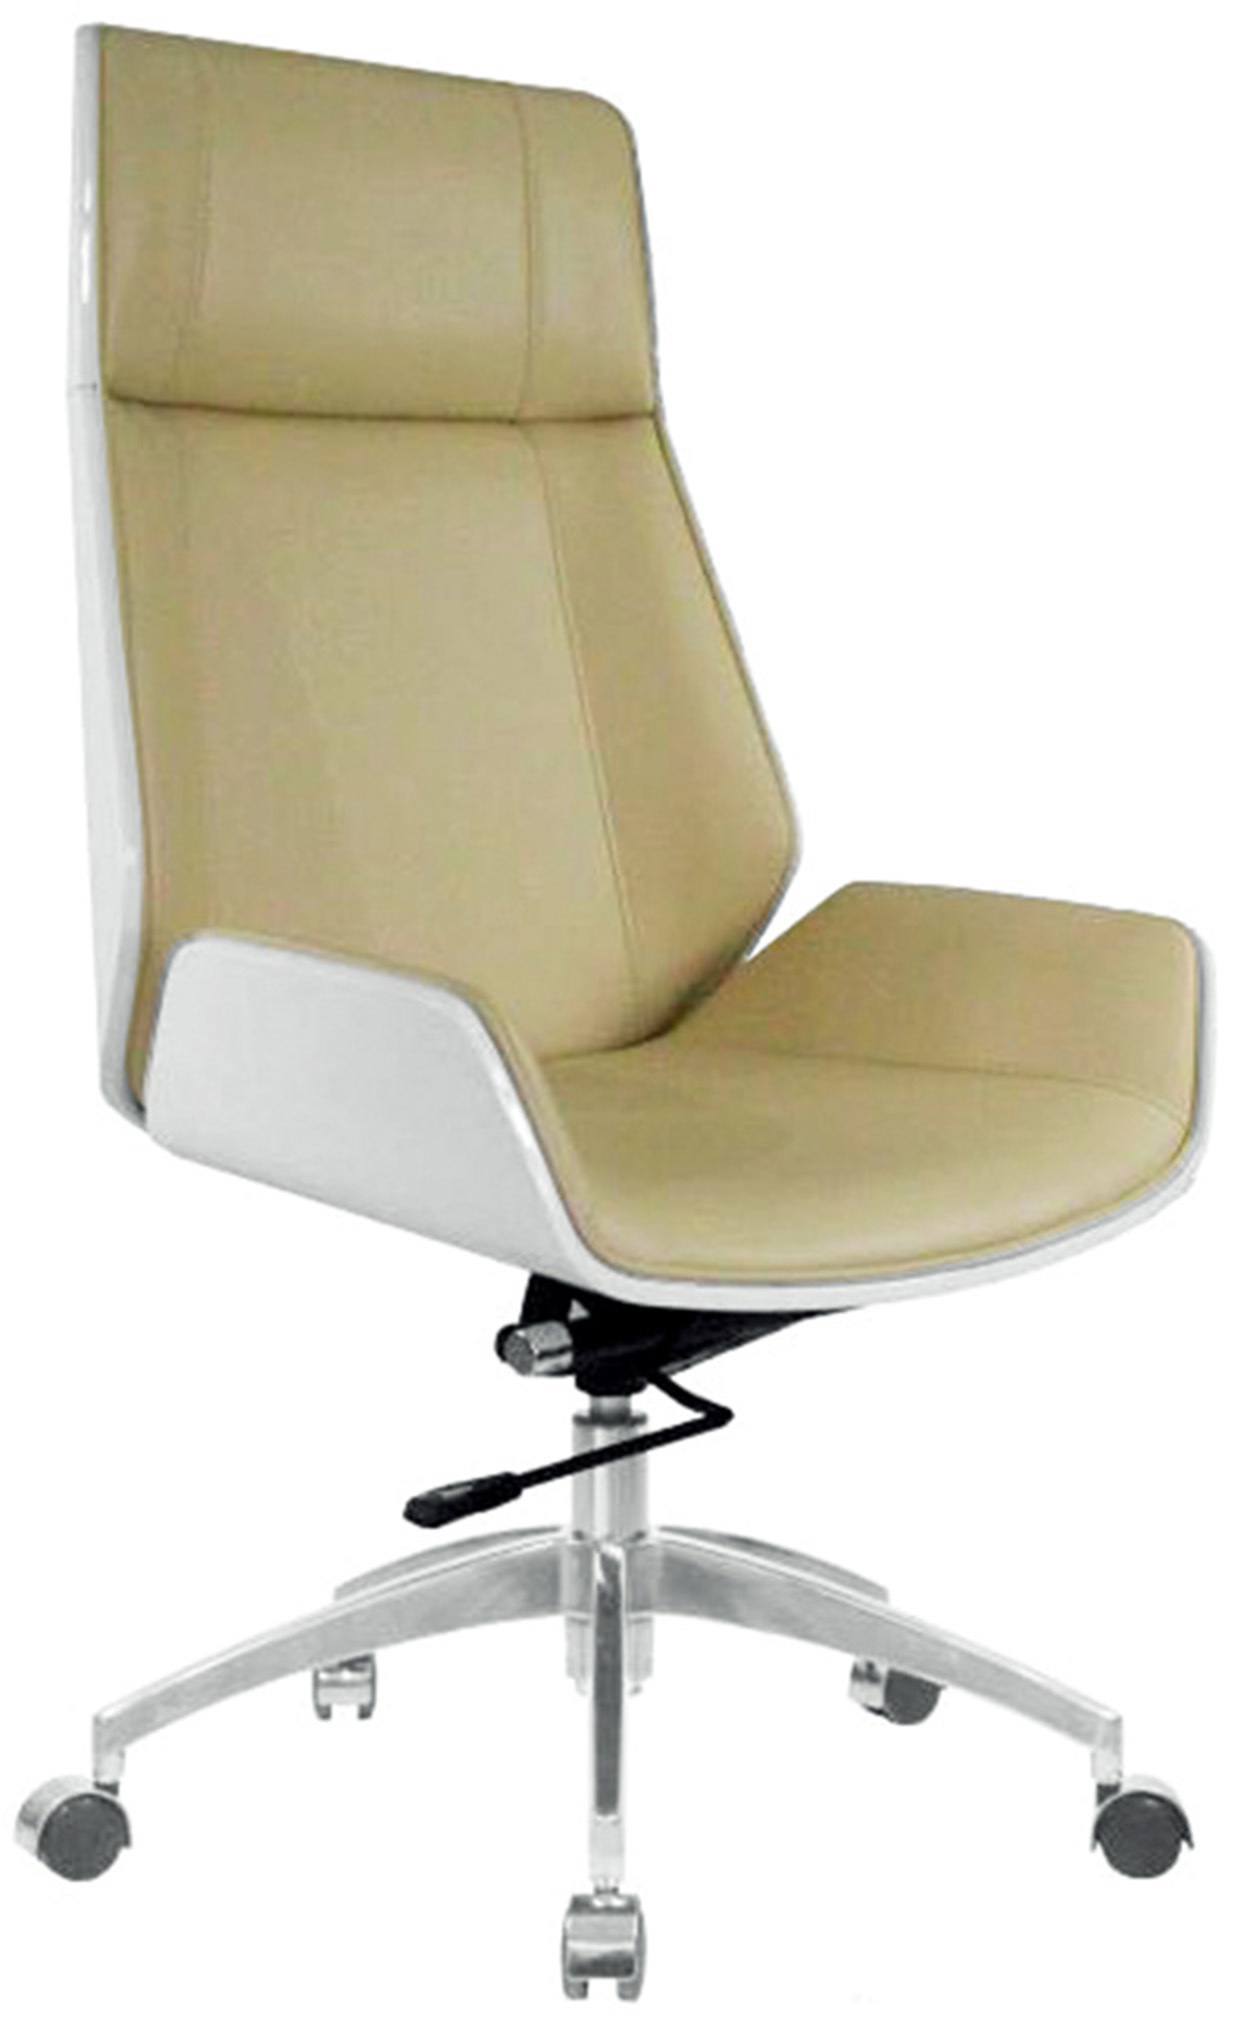 Hot Item Bentwood High Back Leather Ergonomic Home Office Executive Swivel Chair Pk501